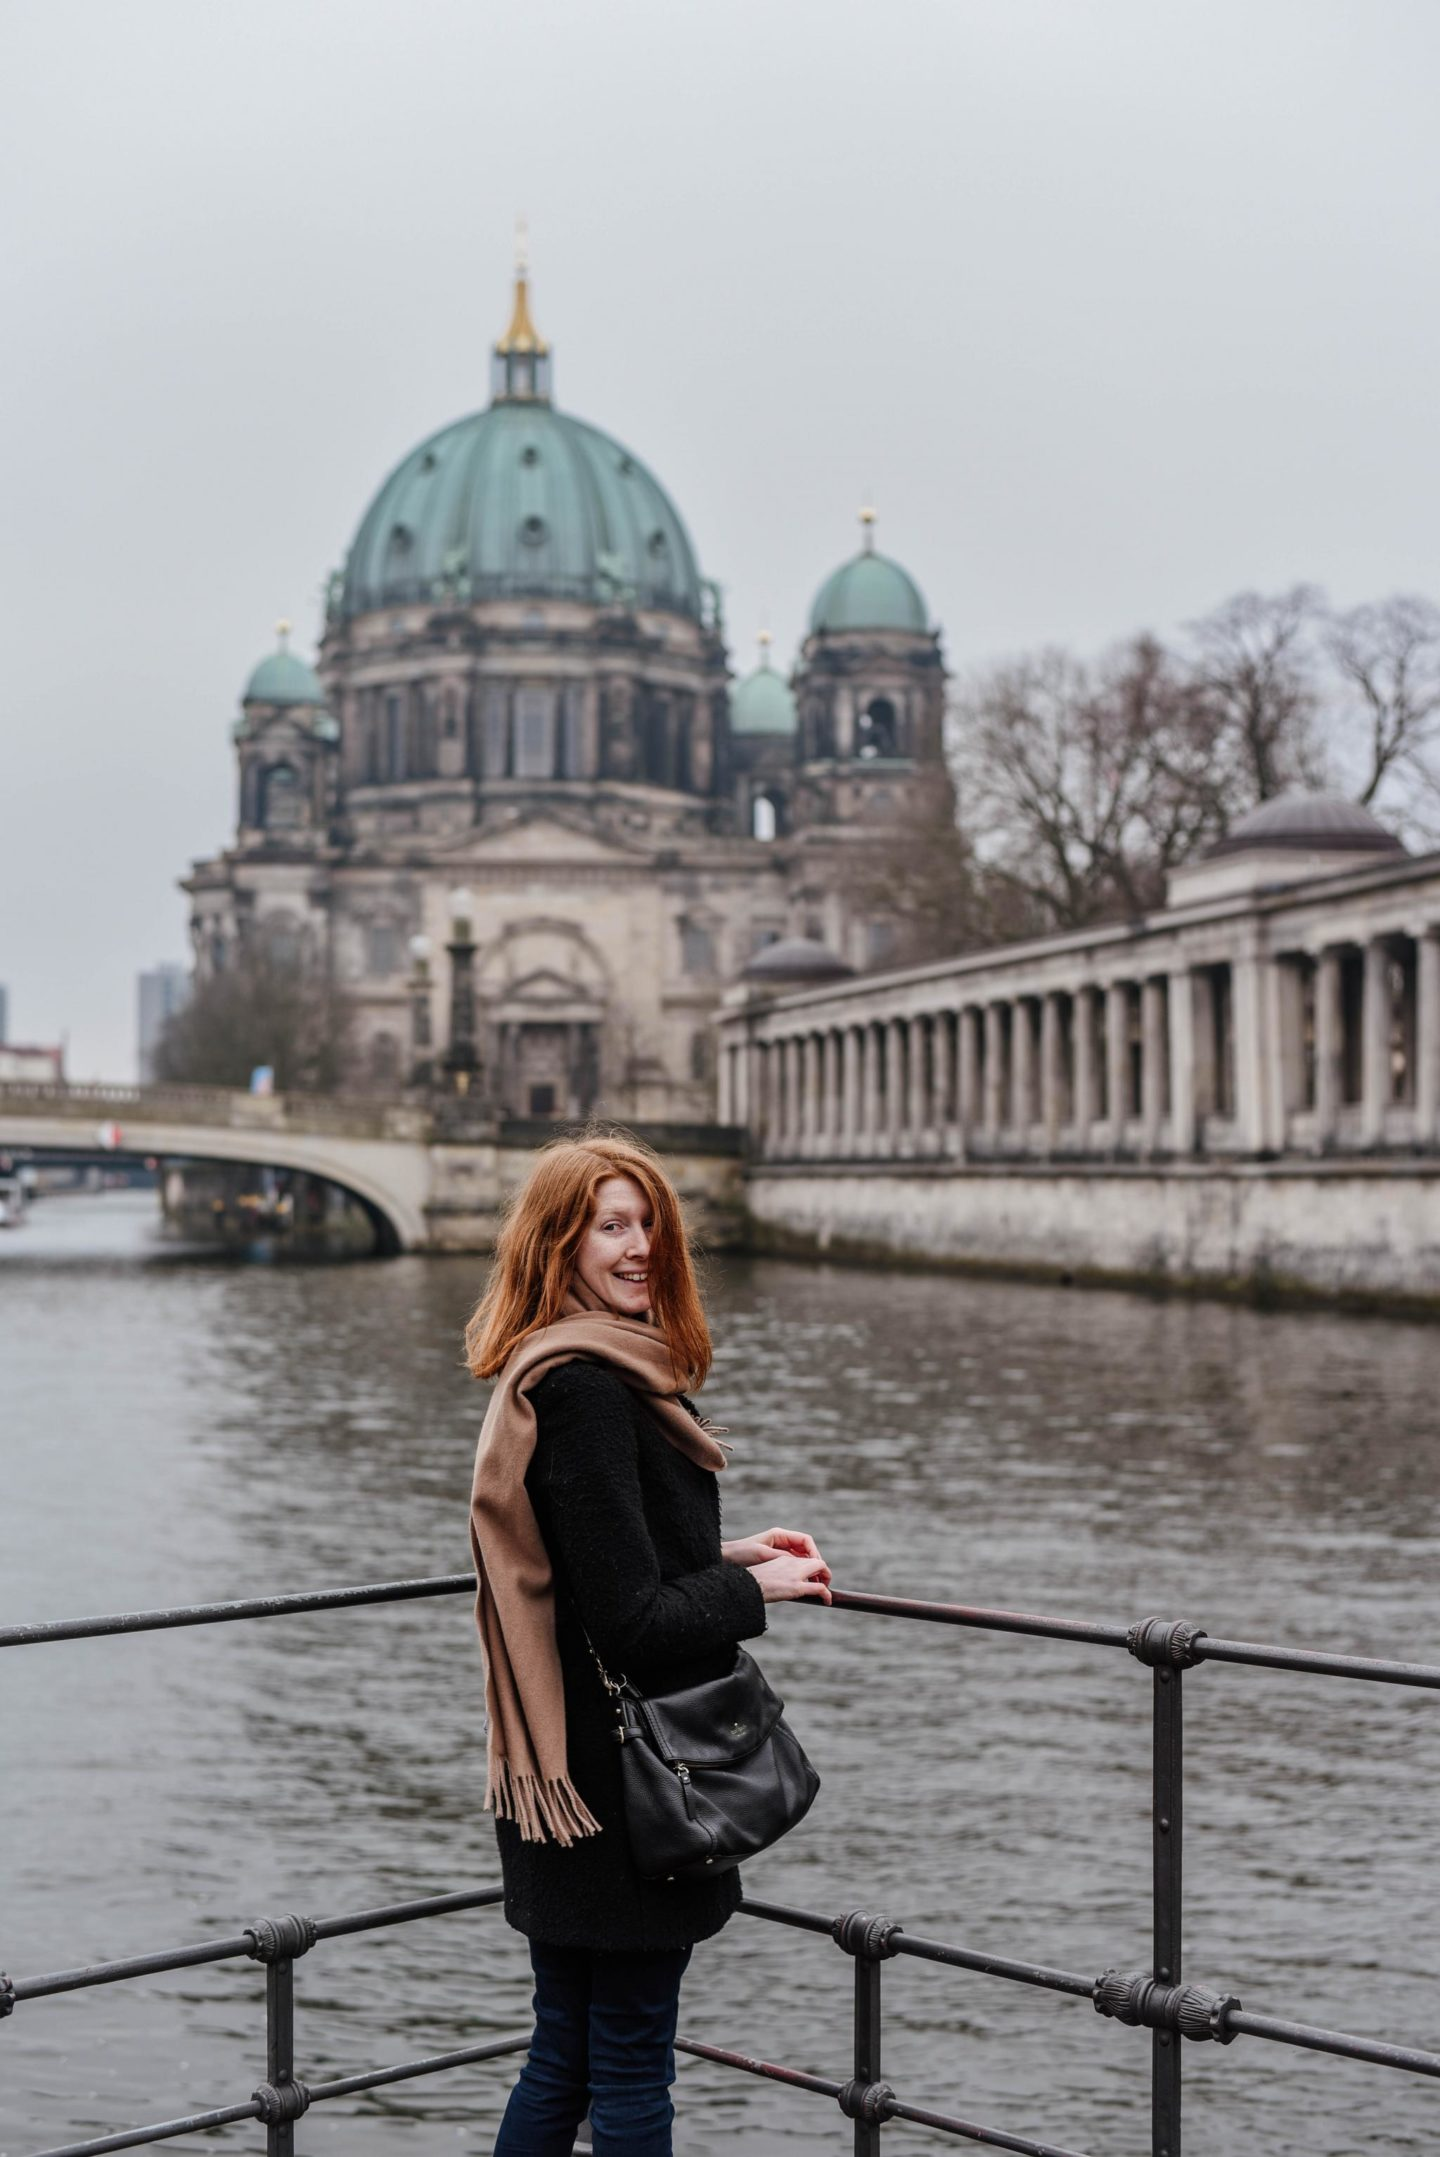 Berlin Photo Diaries